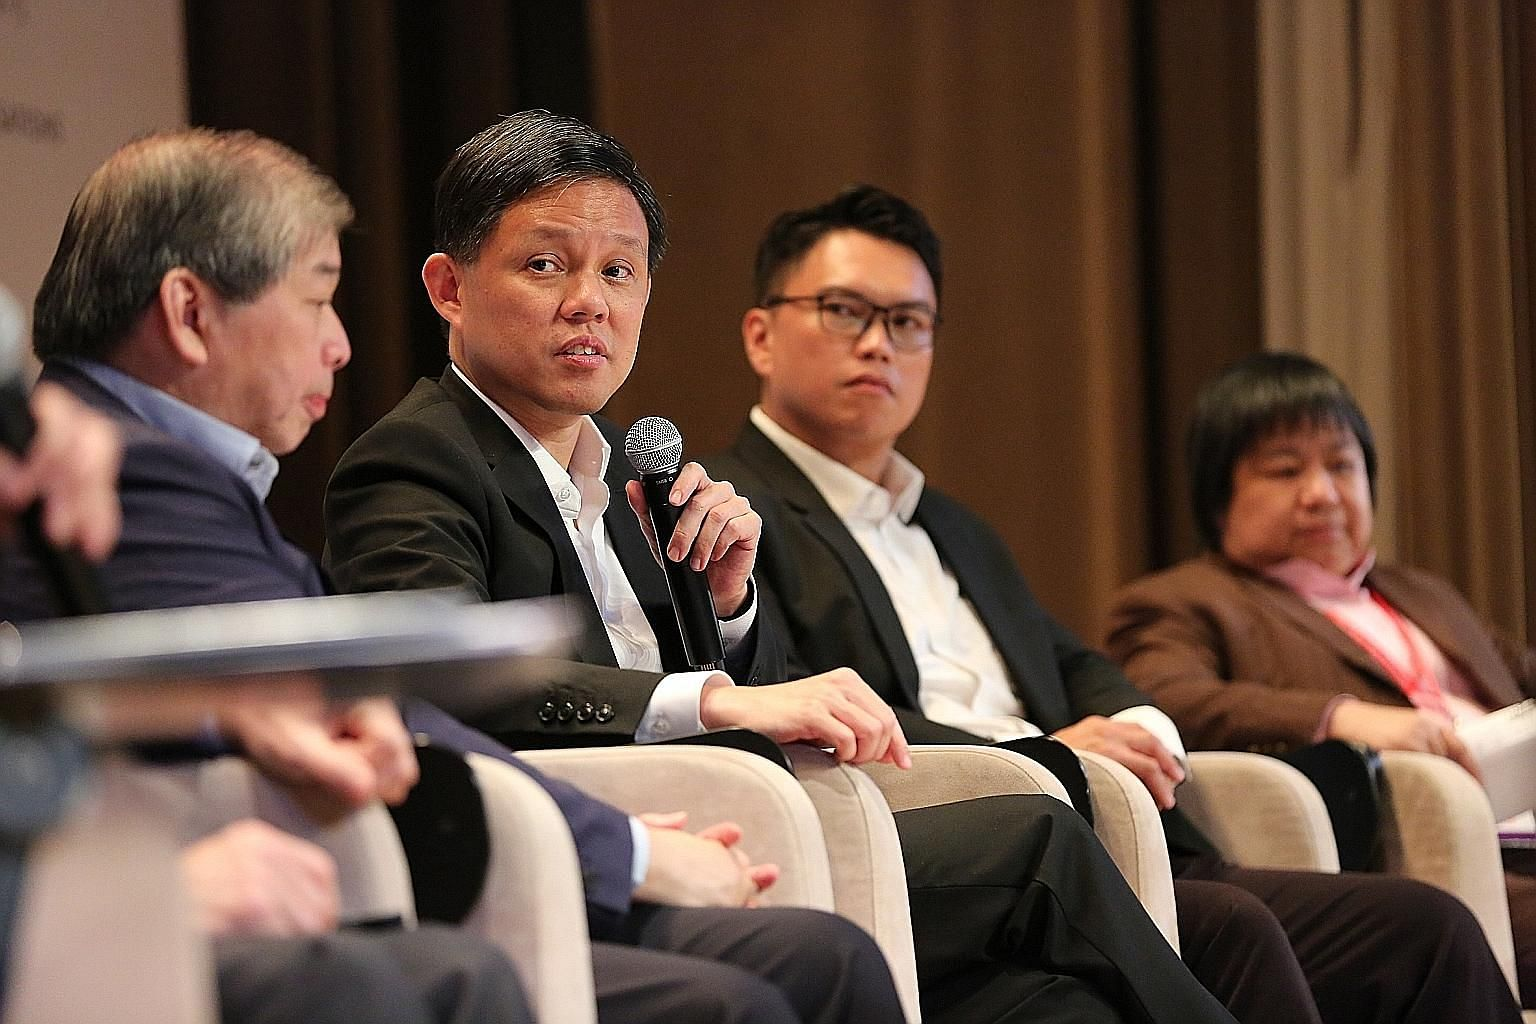 (From left) Singapore Business Federation chairman Teo Siong Seng, Trade and Industry Minister Chan Chun Sing, NTUC assistant secretary-general Patrick Tay and Accenture senior managing director for Asean Teo Lay Lim at a panel discussion yesterday a